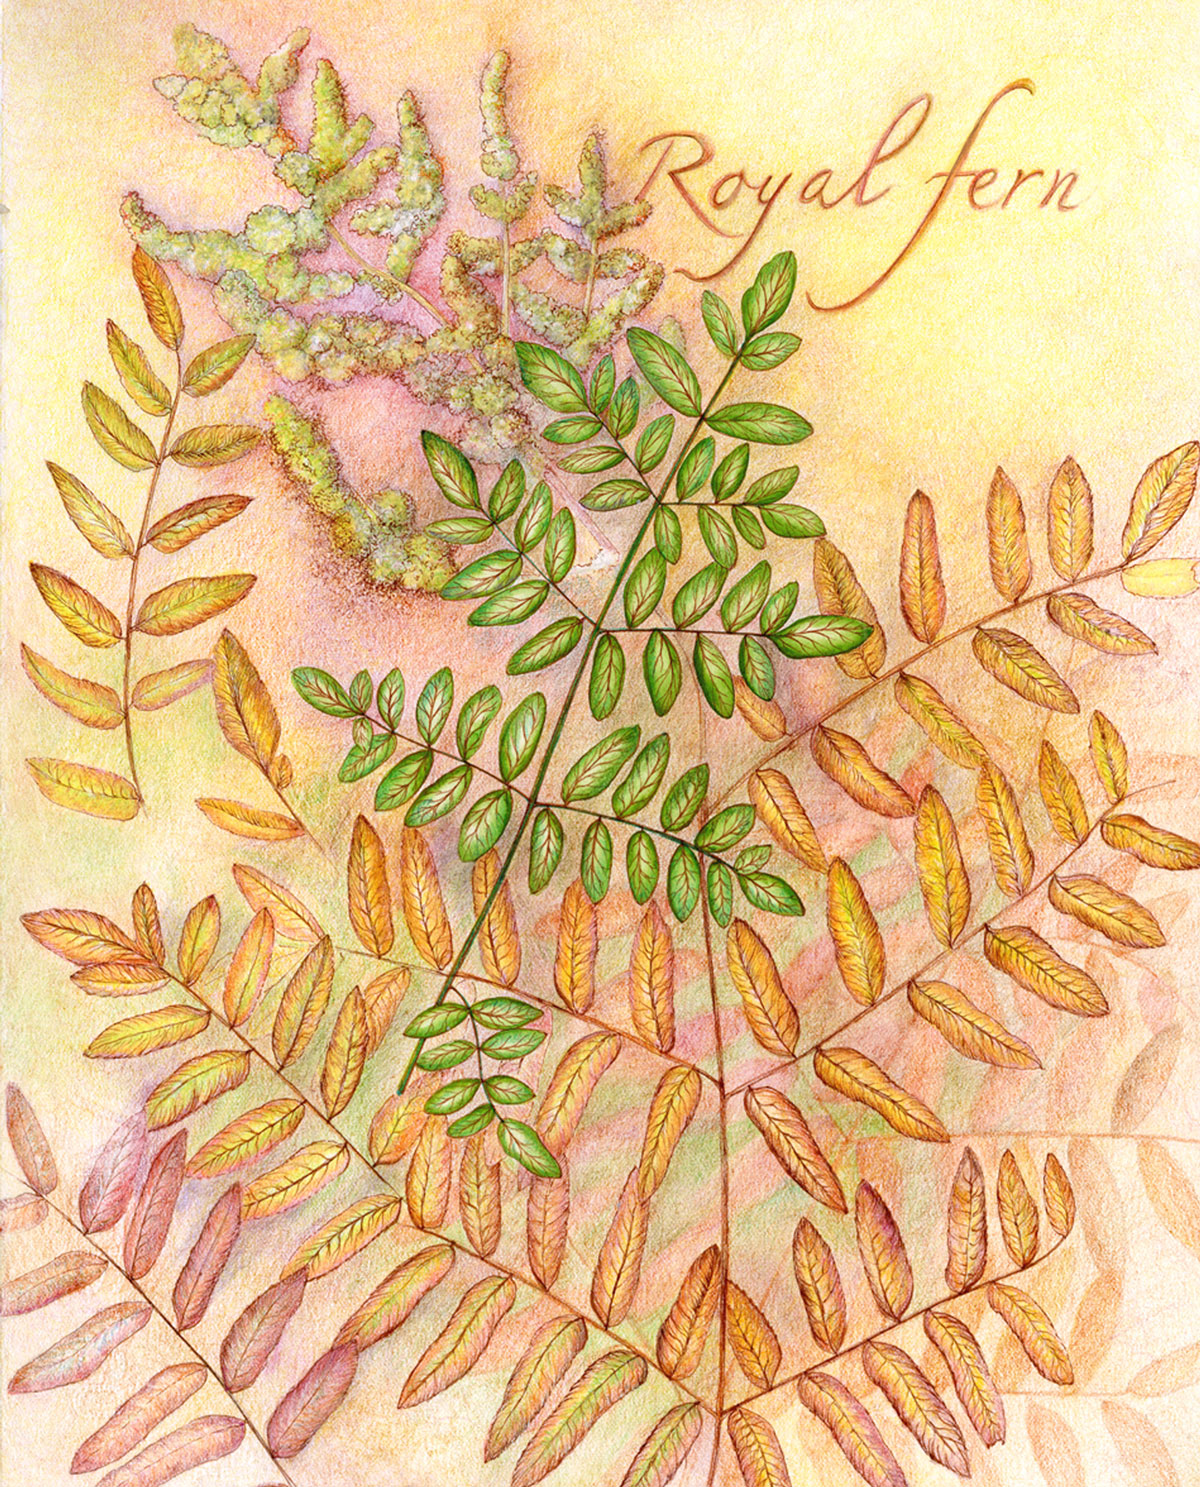 Royal Fern